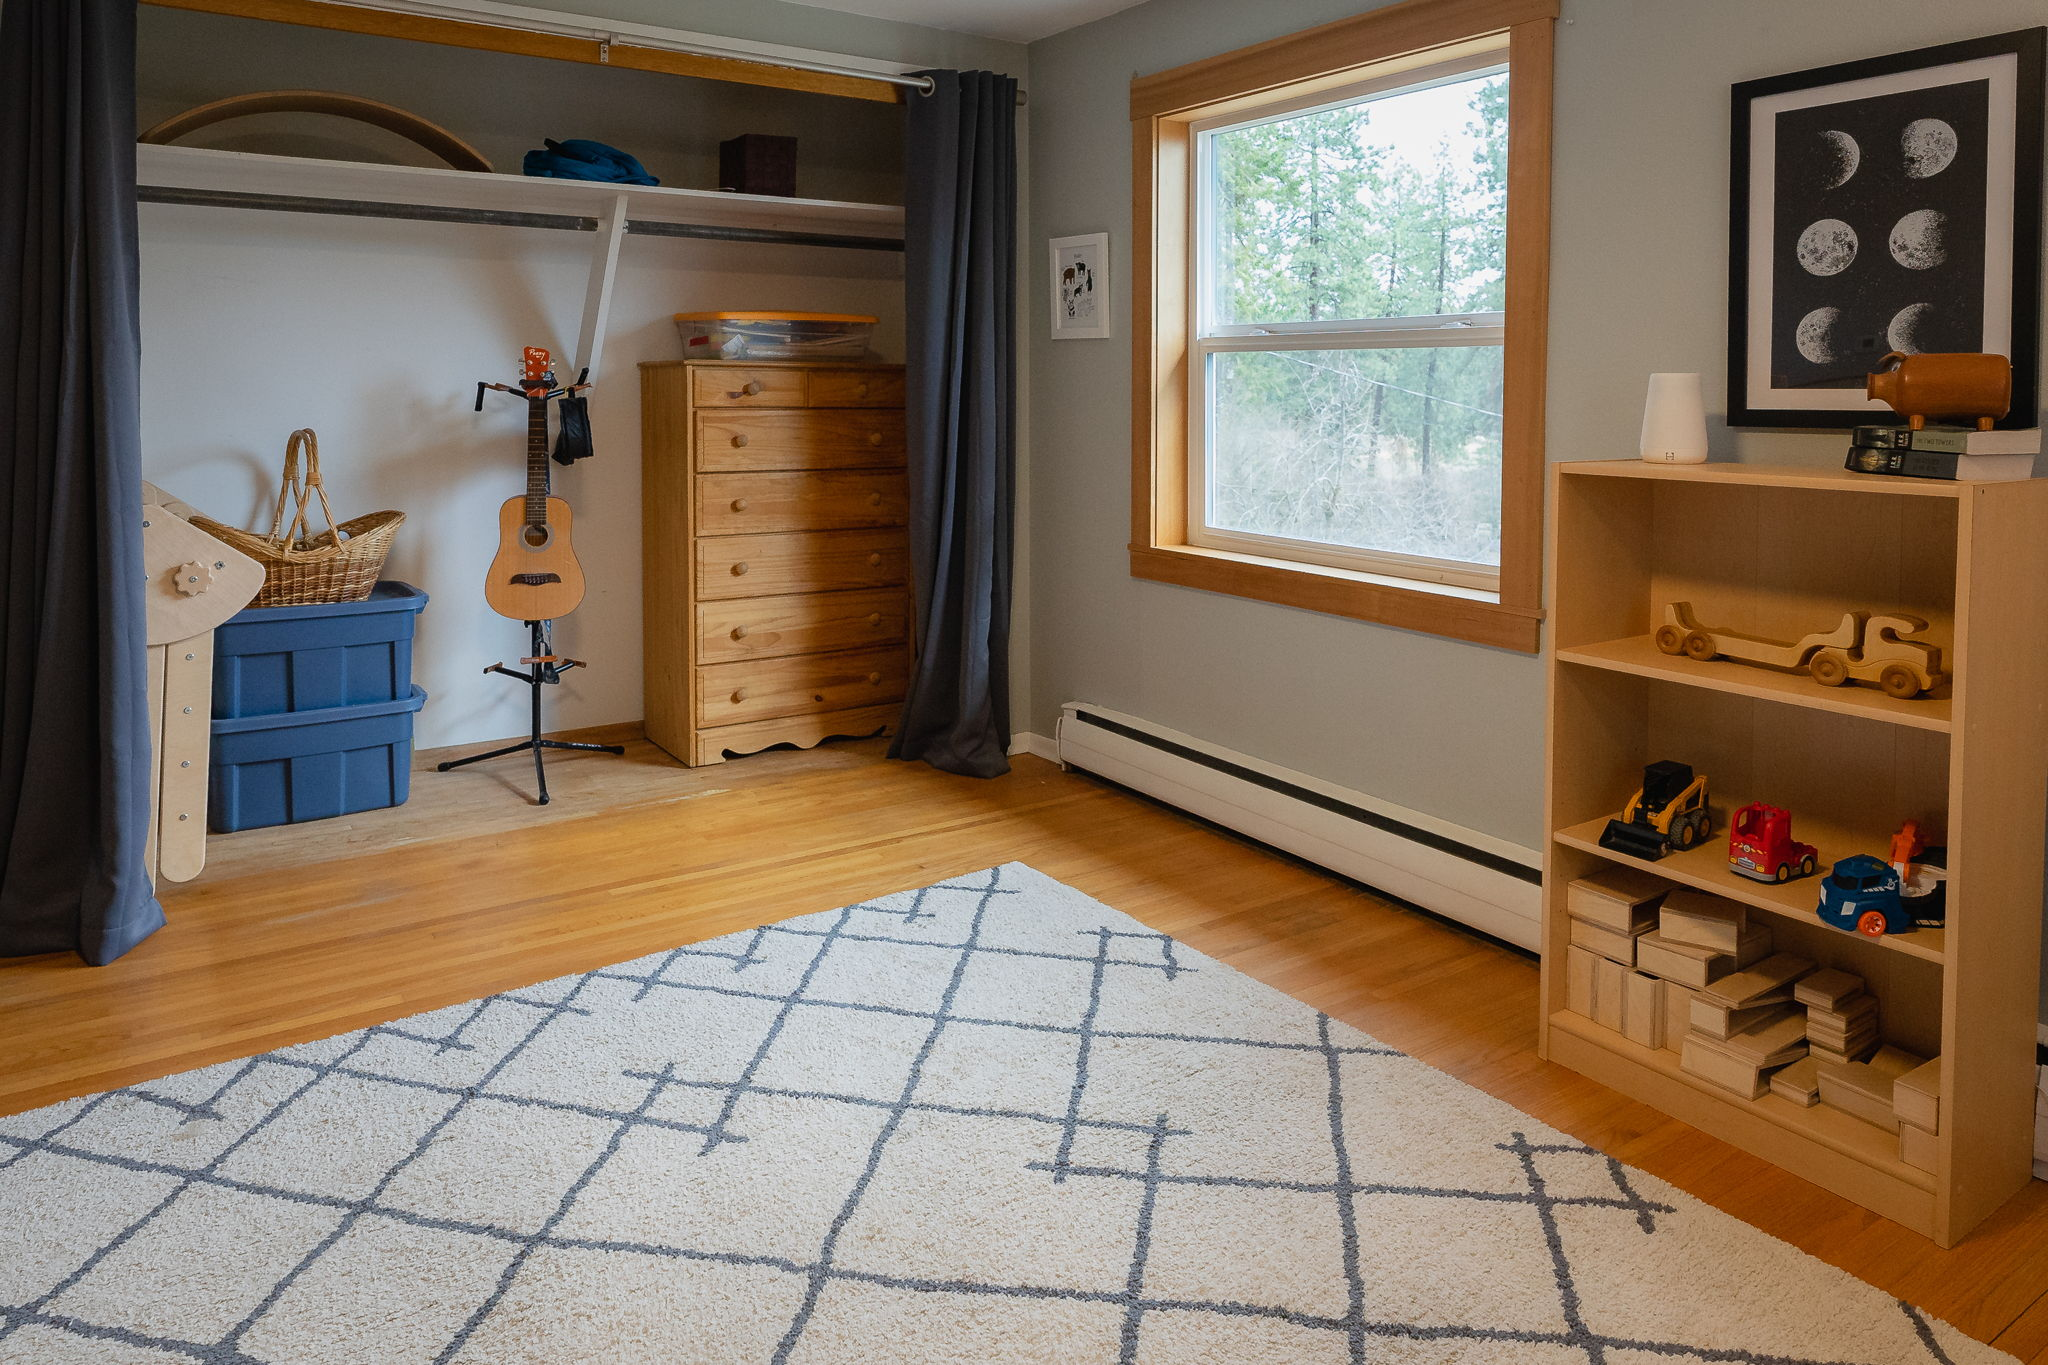 Closet space and forest views in bedroom #3